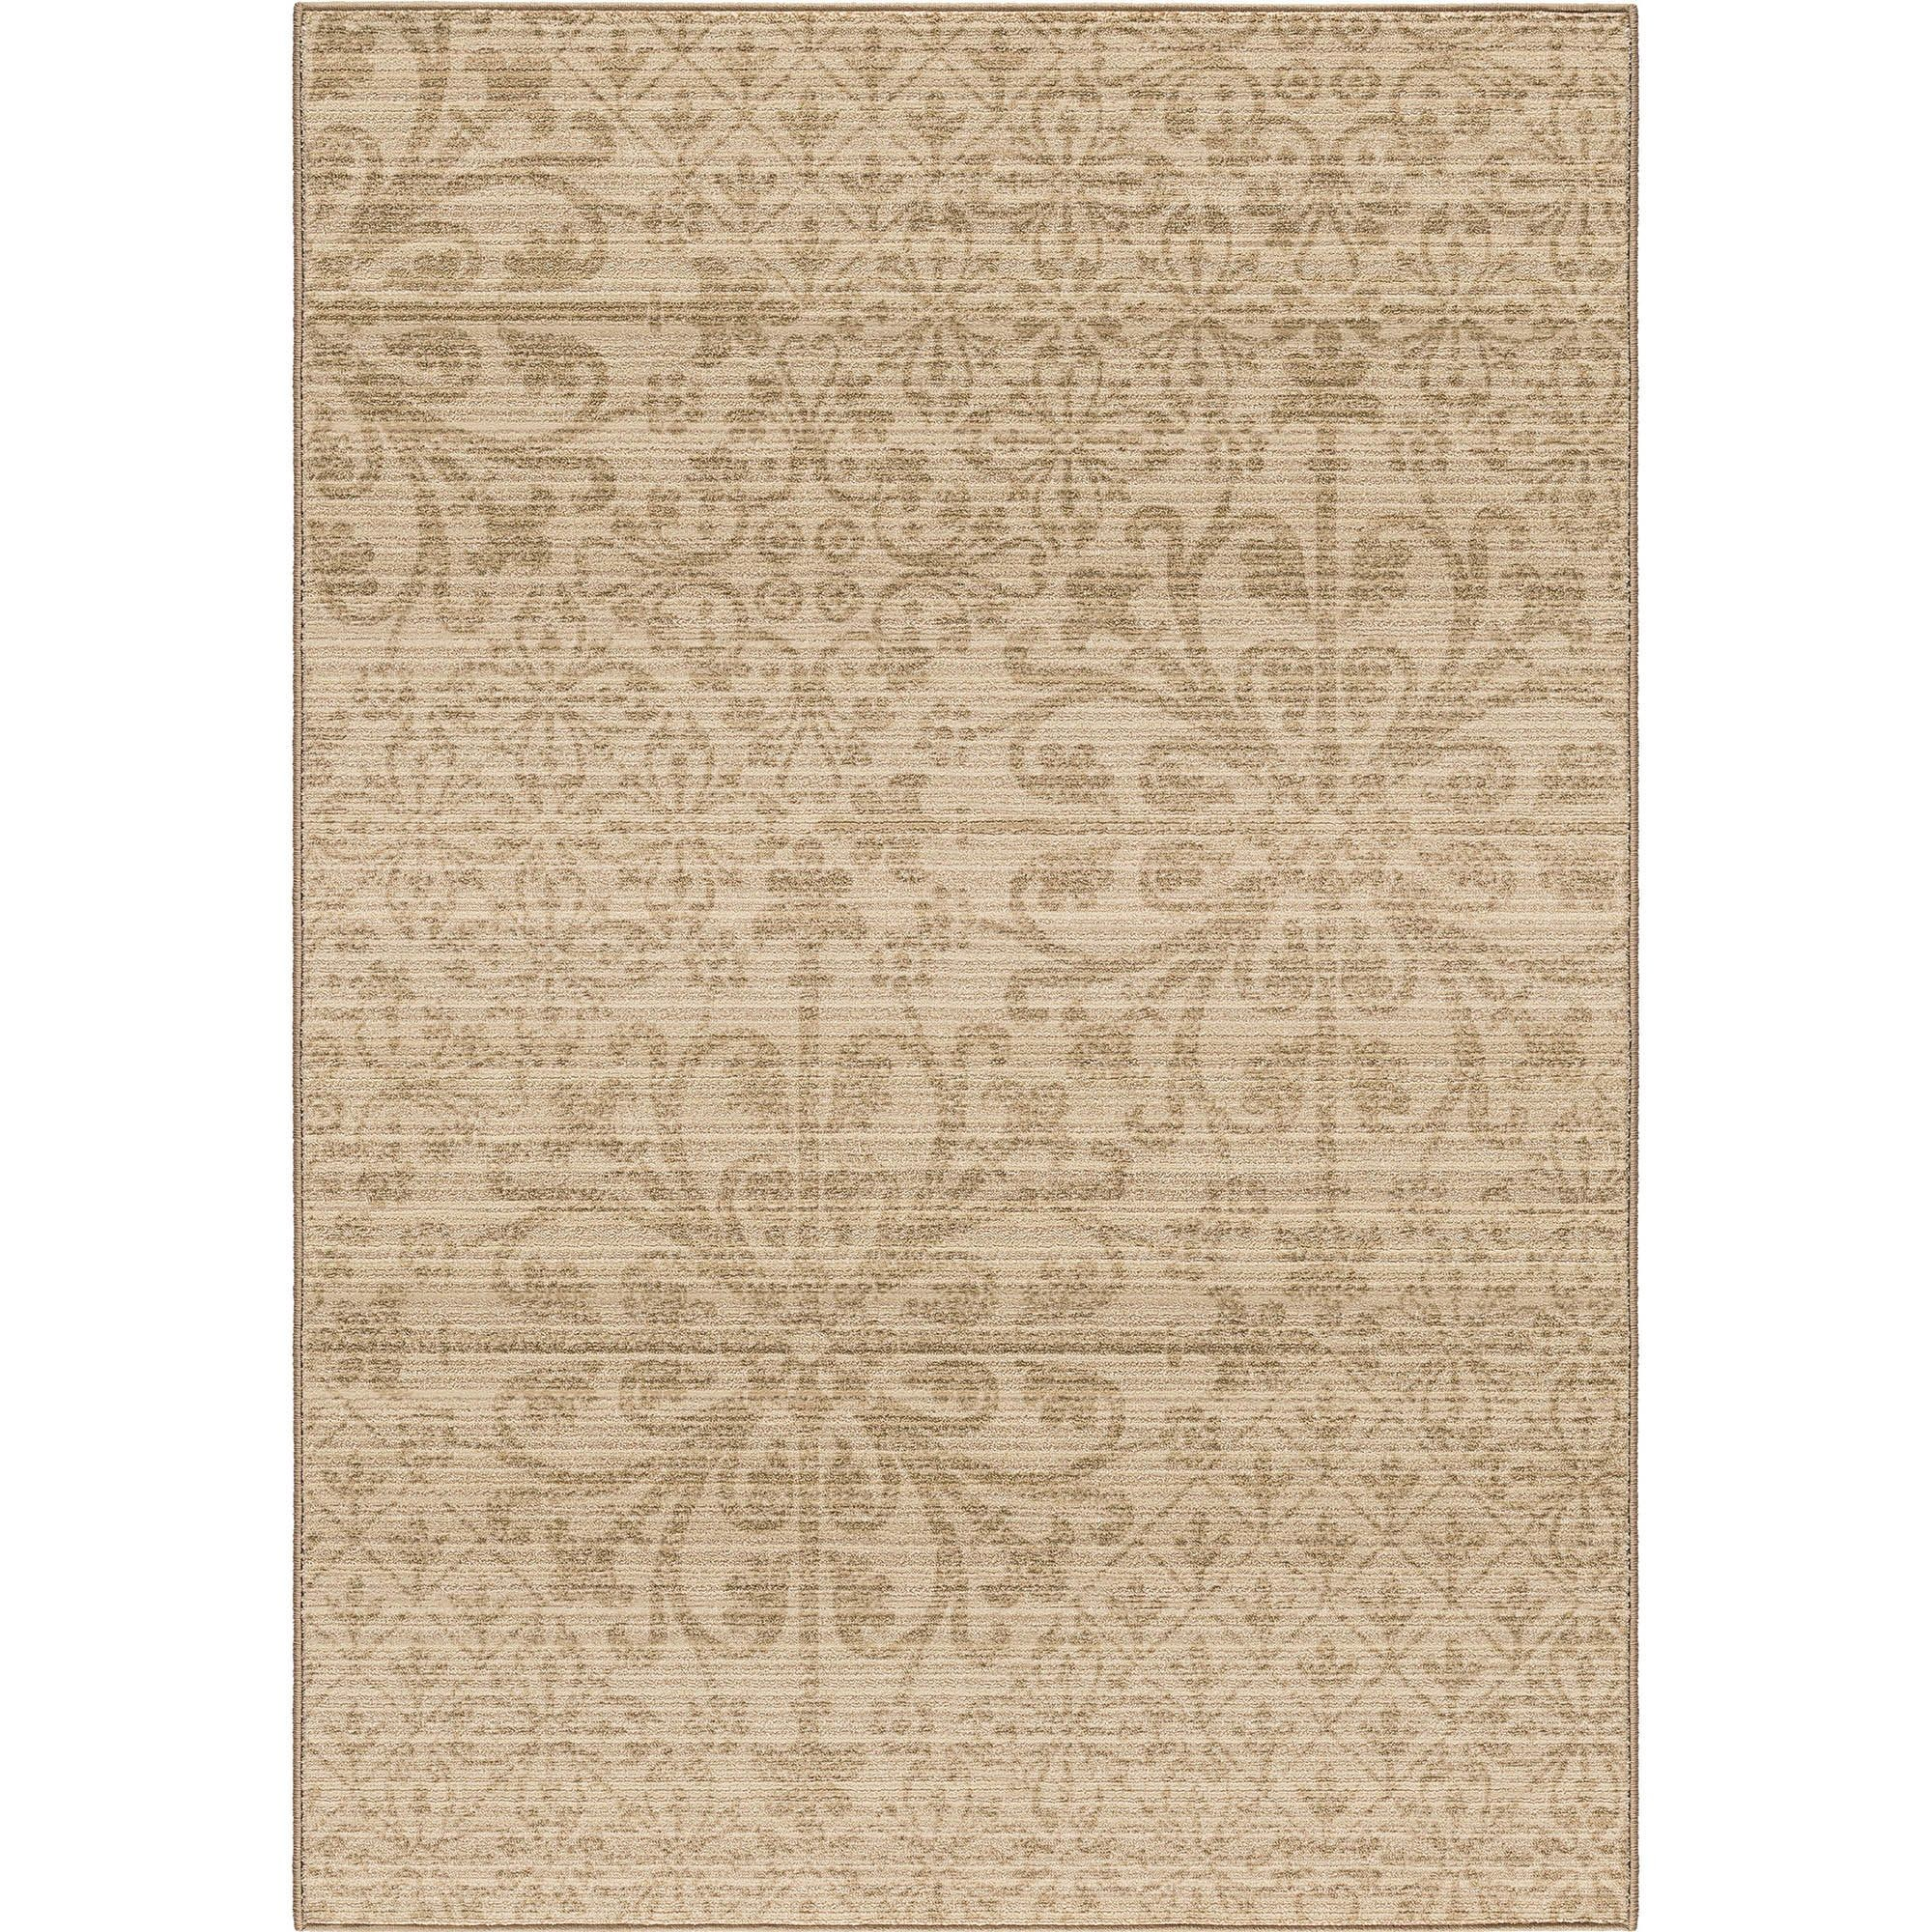 Messina White Medium Rug From Orian 2718 5x8 Coleman